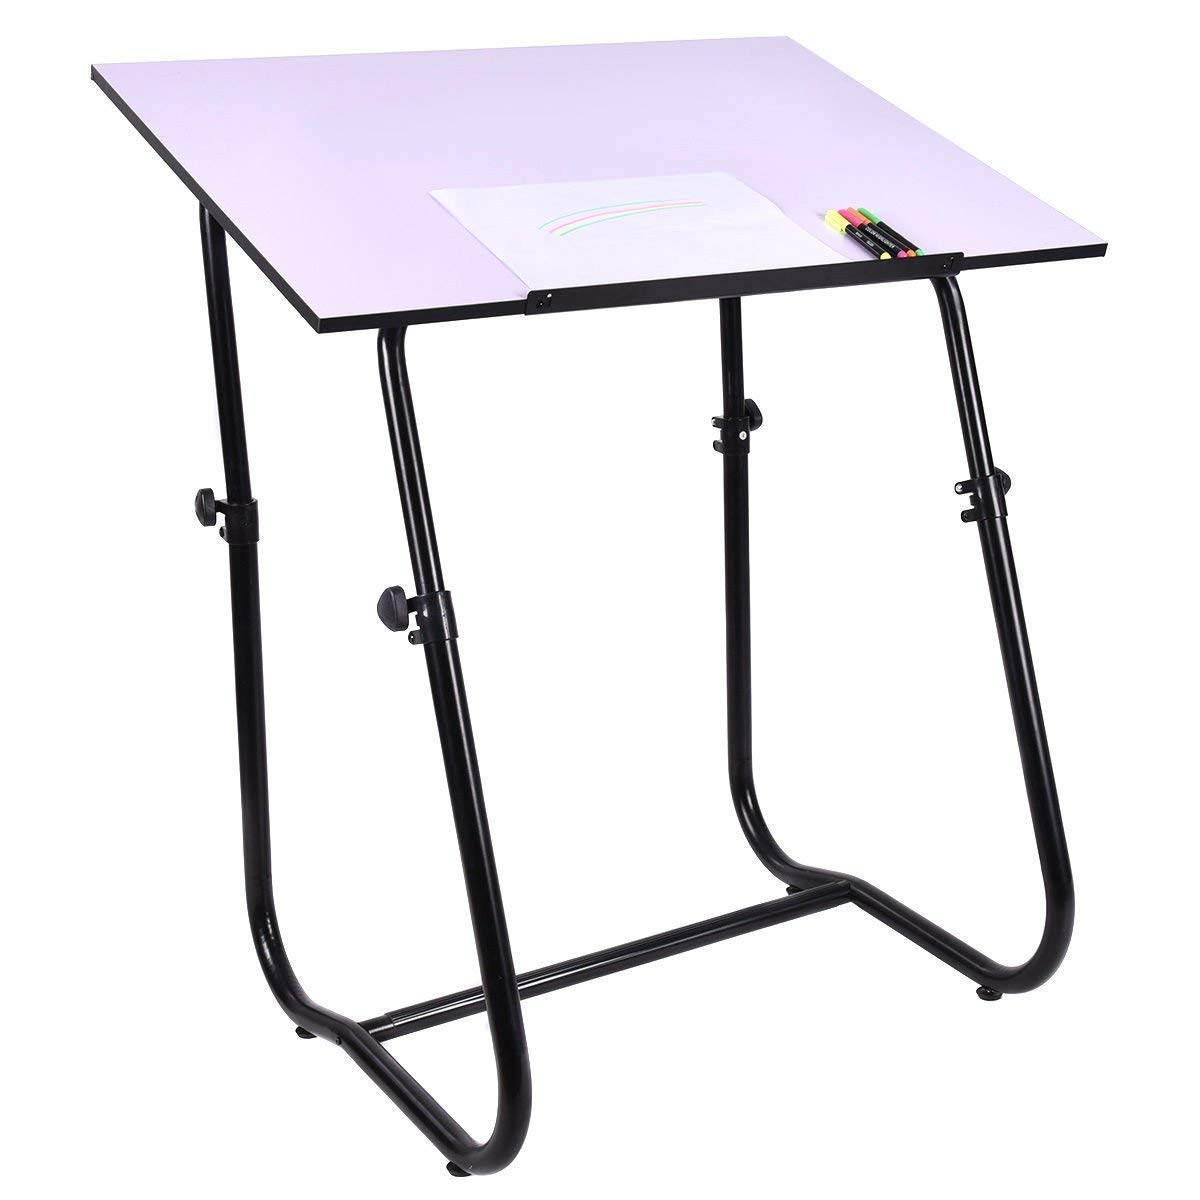 Tangkula Drawing Desk Height Adjustable Indoor Outdoor Home Office Workstation Tiltable Compact Portable Drafting Table by Tangkula